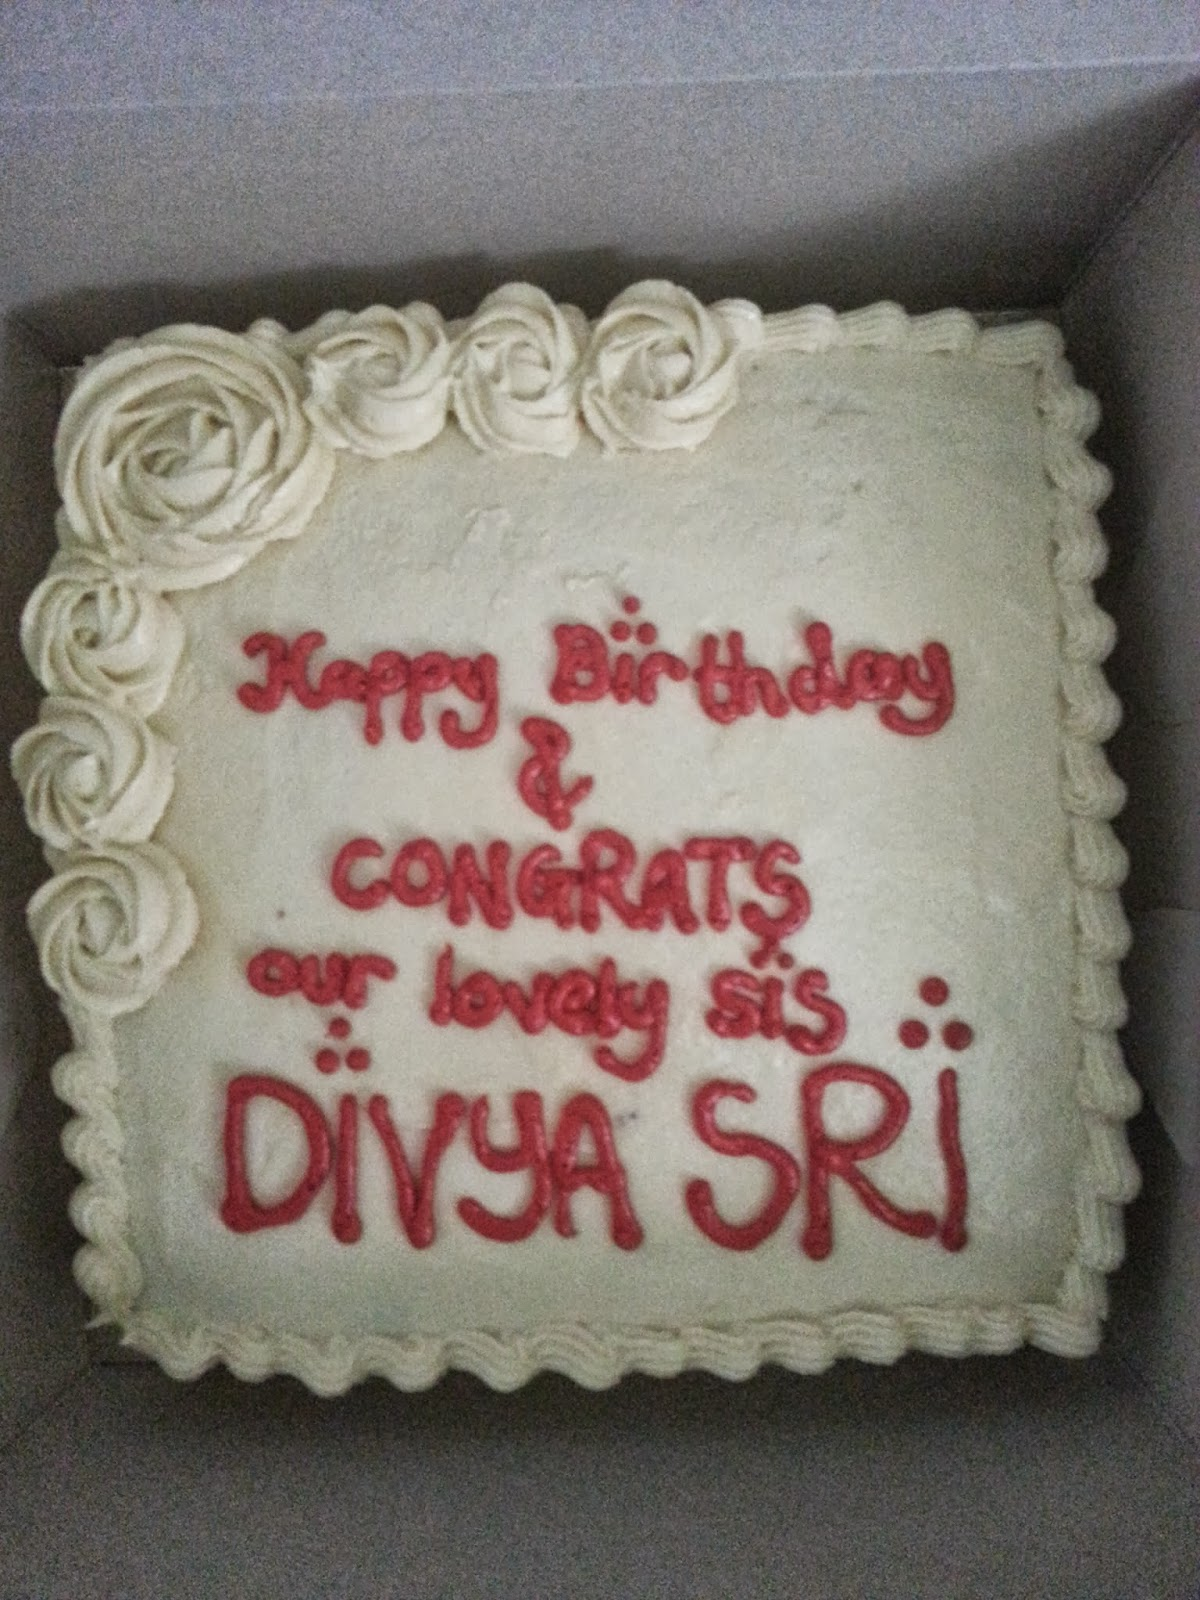 Birthday cake images with name divya